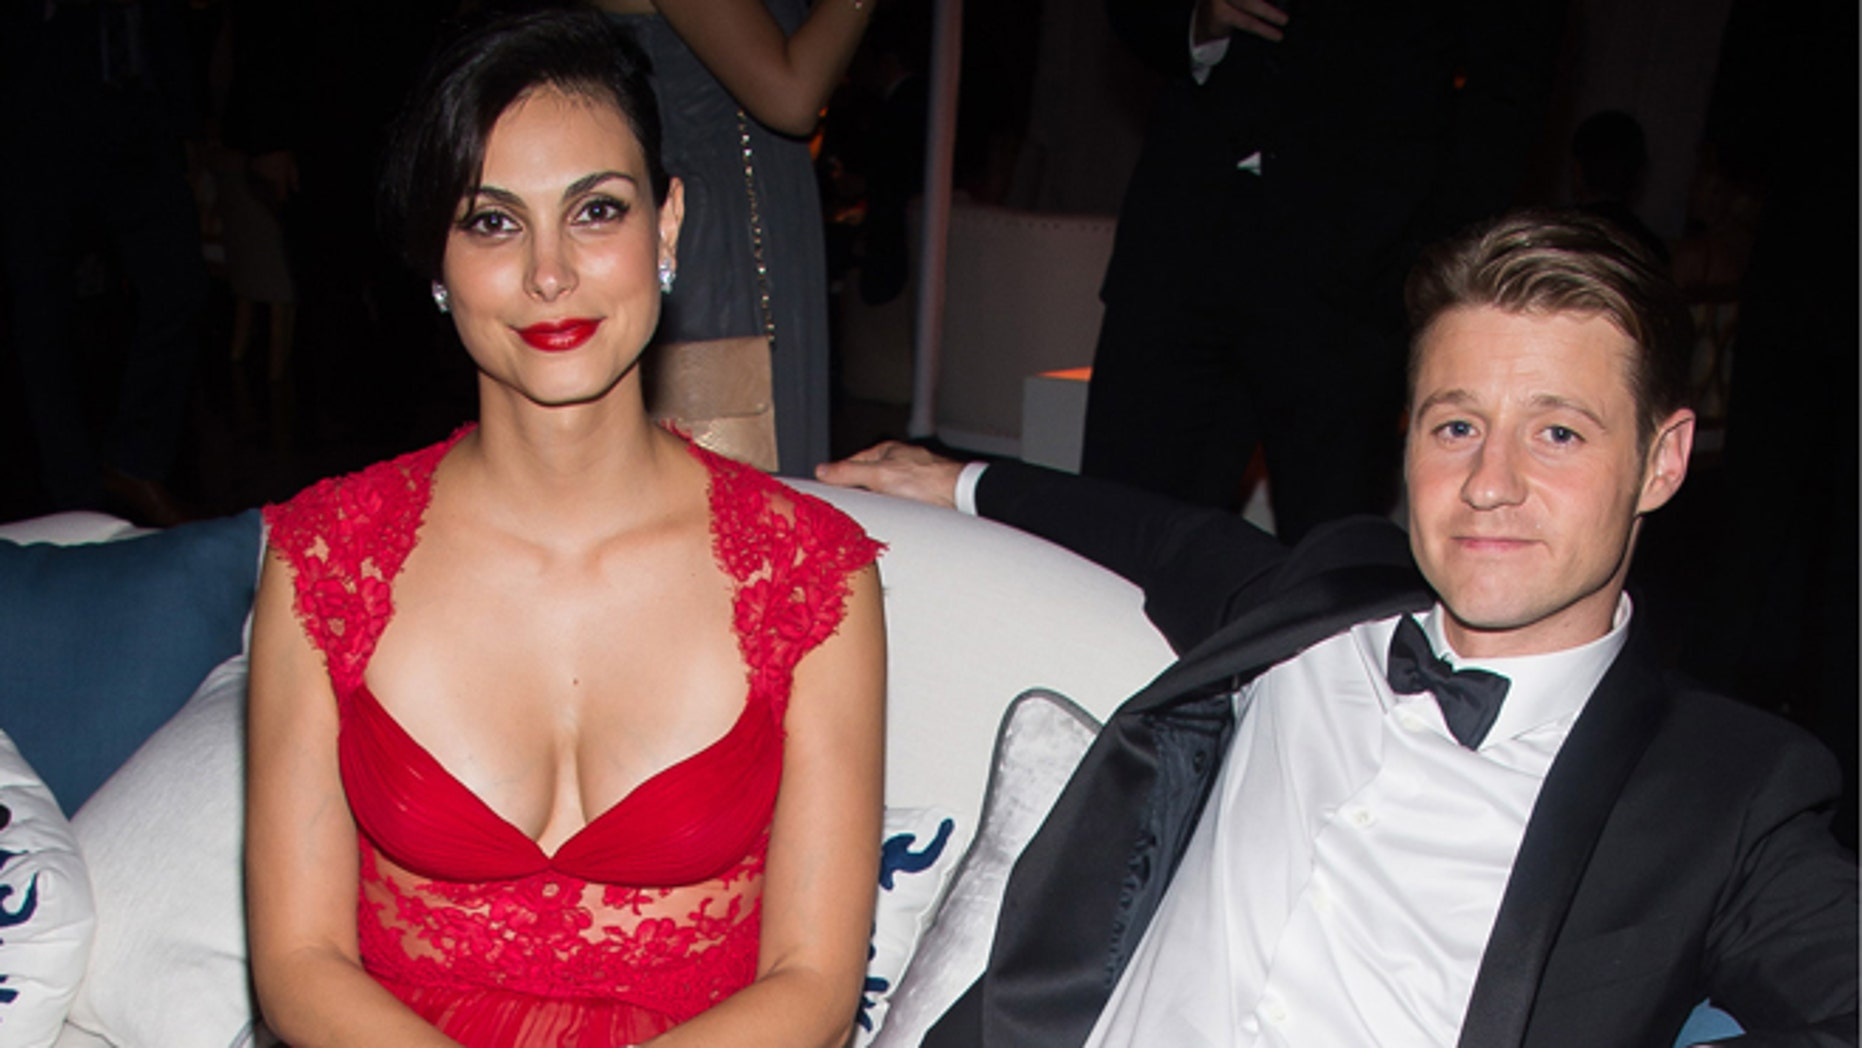 Morena Baccarin and Benjamin McKenzie on Sunday, Sept. 20, 2015 in Los Angeles.